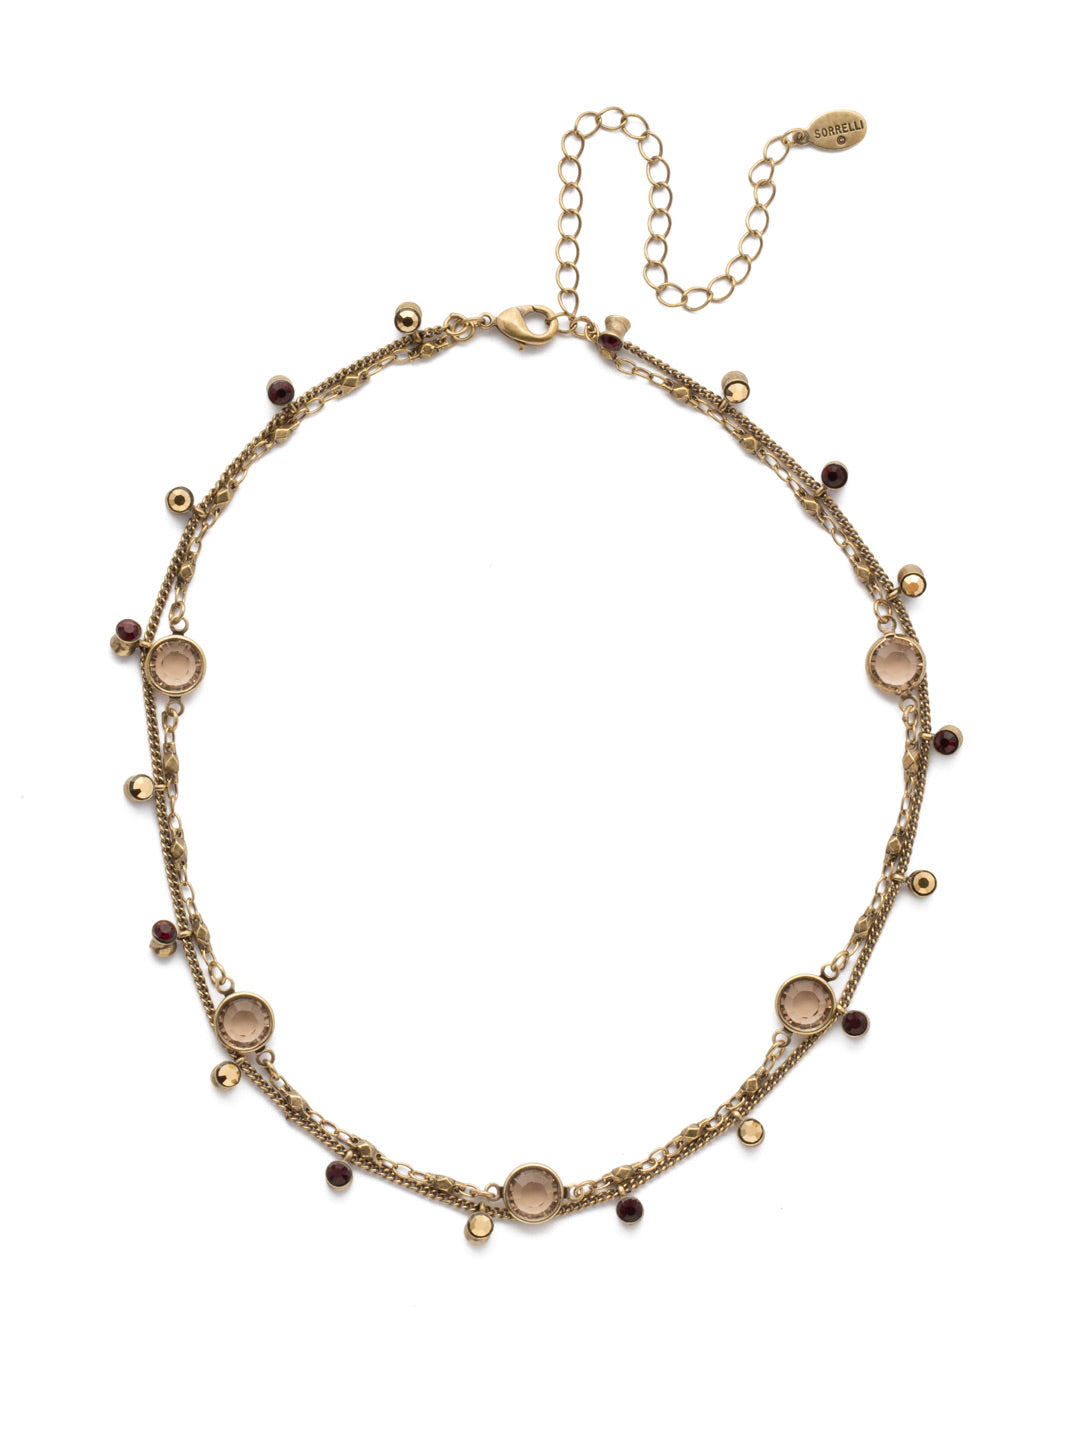 Dewdrop Layered Necklace - NEK36AGMMA